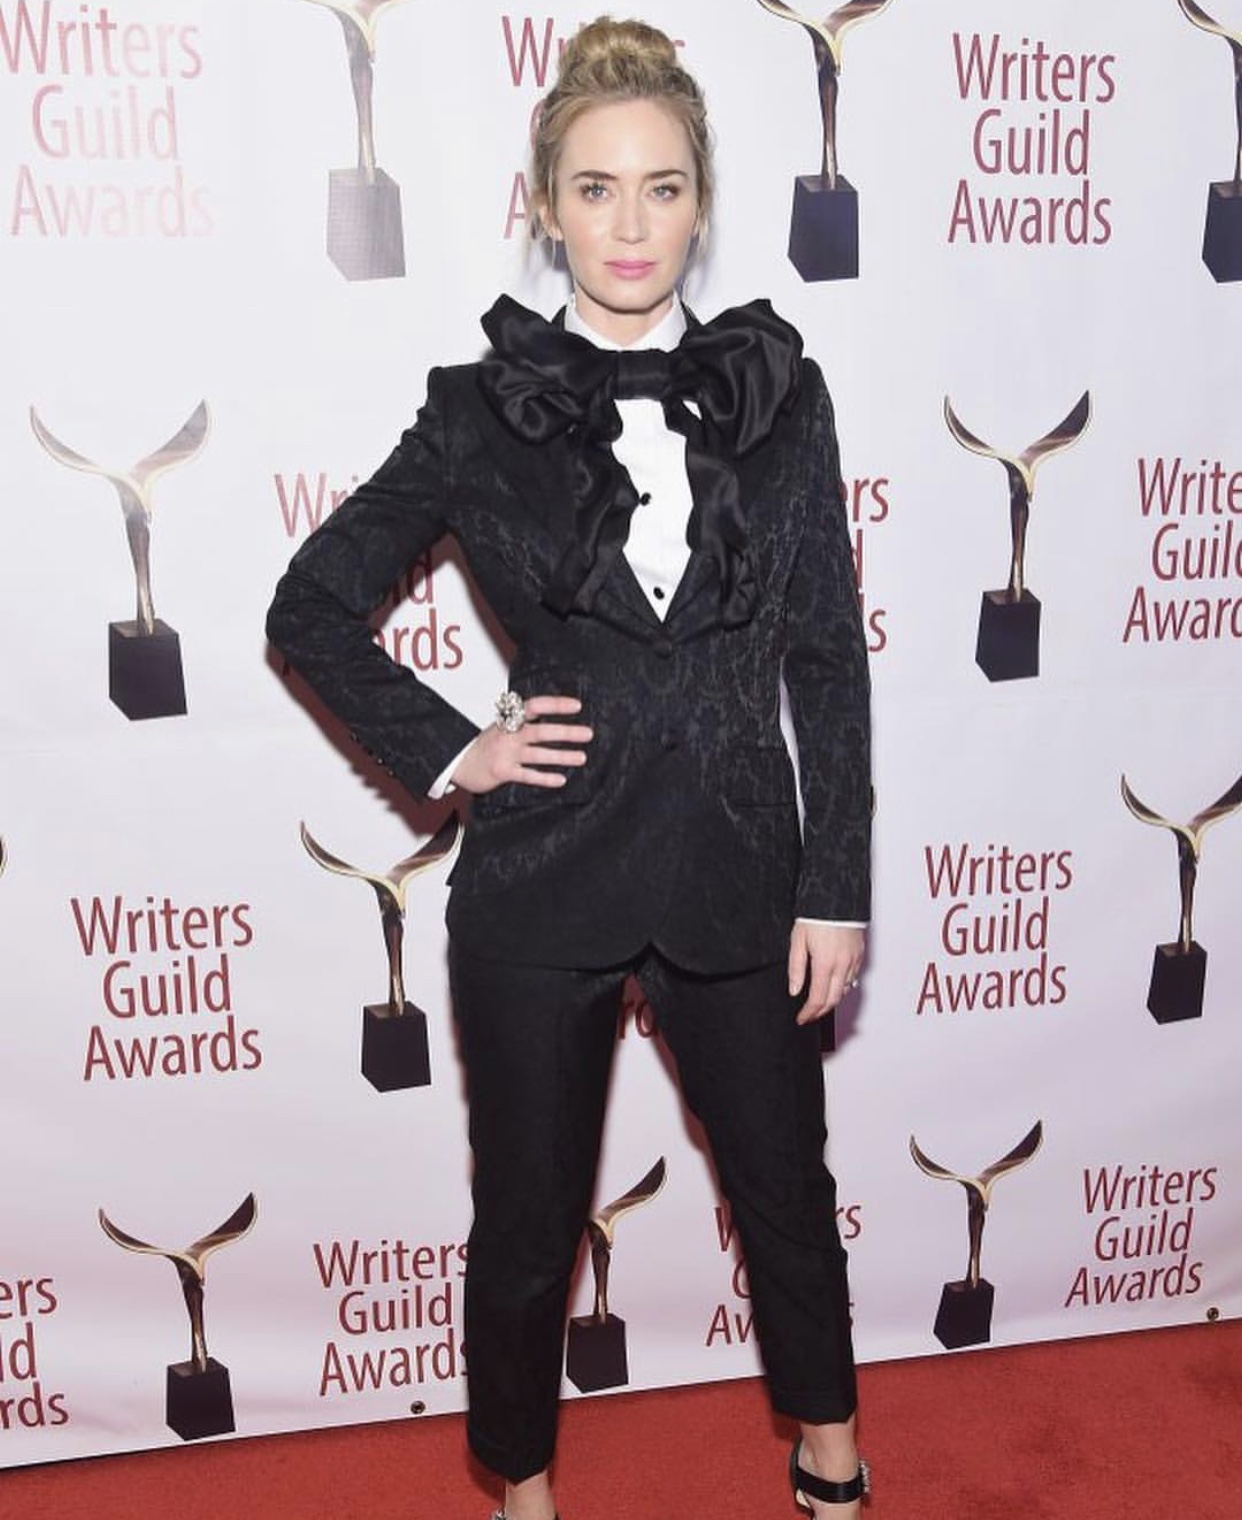 Emily Blunt x Writers Guild Awards – 2018